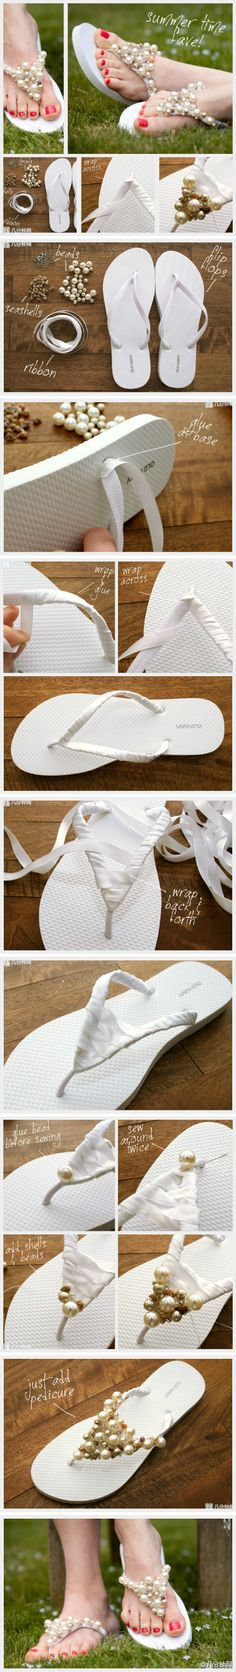 awesome idea! .. awesome idea! .... some pinners are just using, STRONG GLUE,  to add embellishments. Sooo many good glues for a project like this.